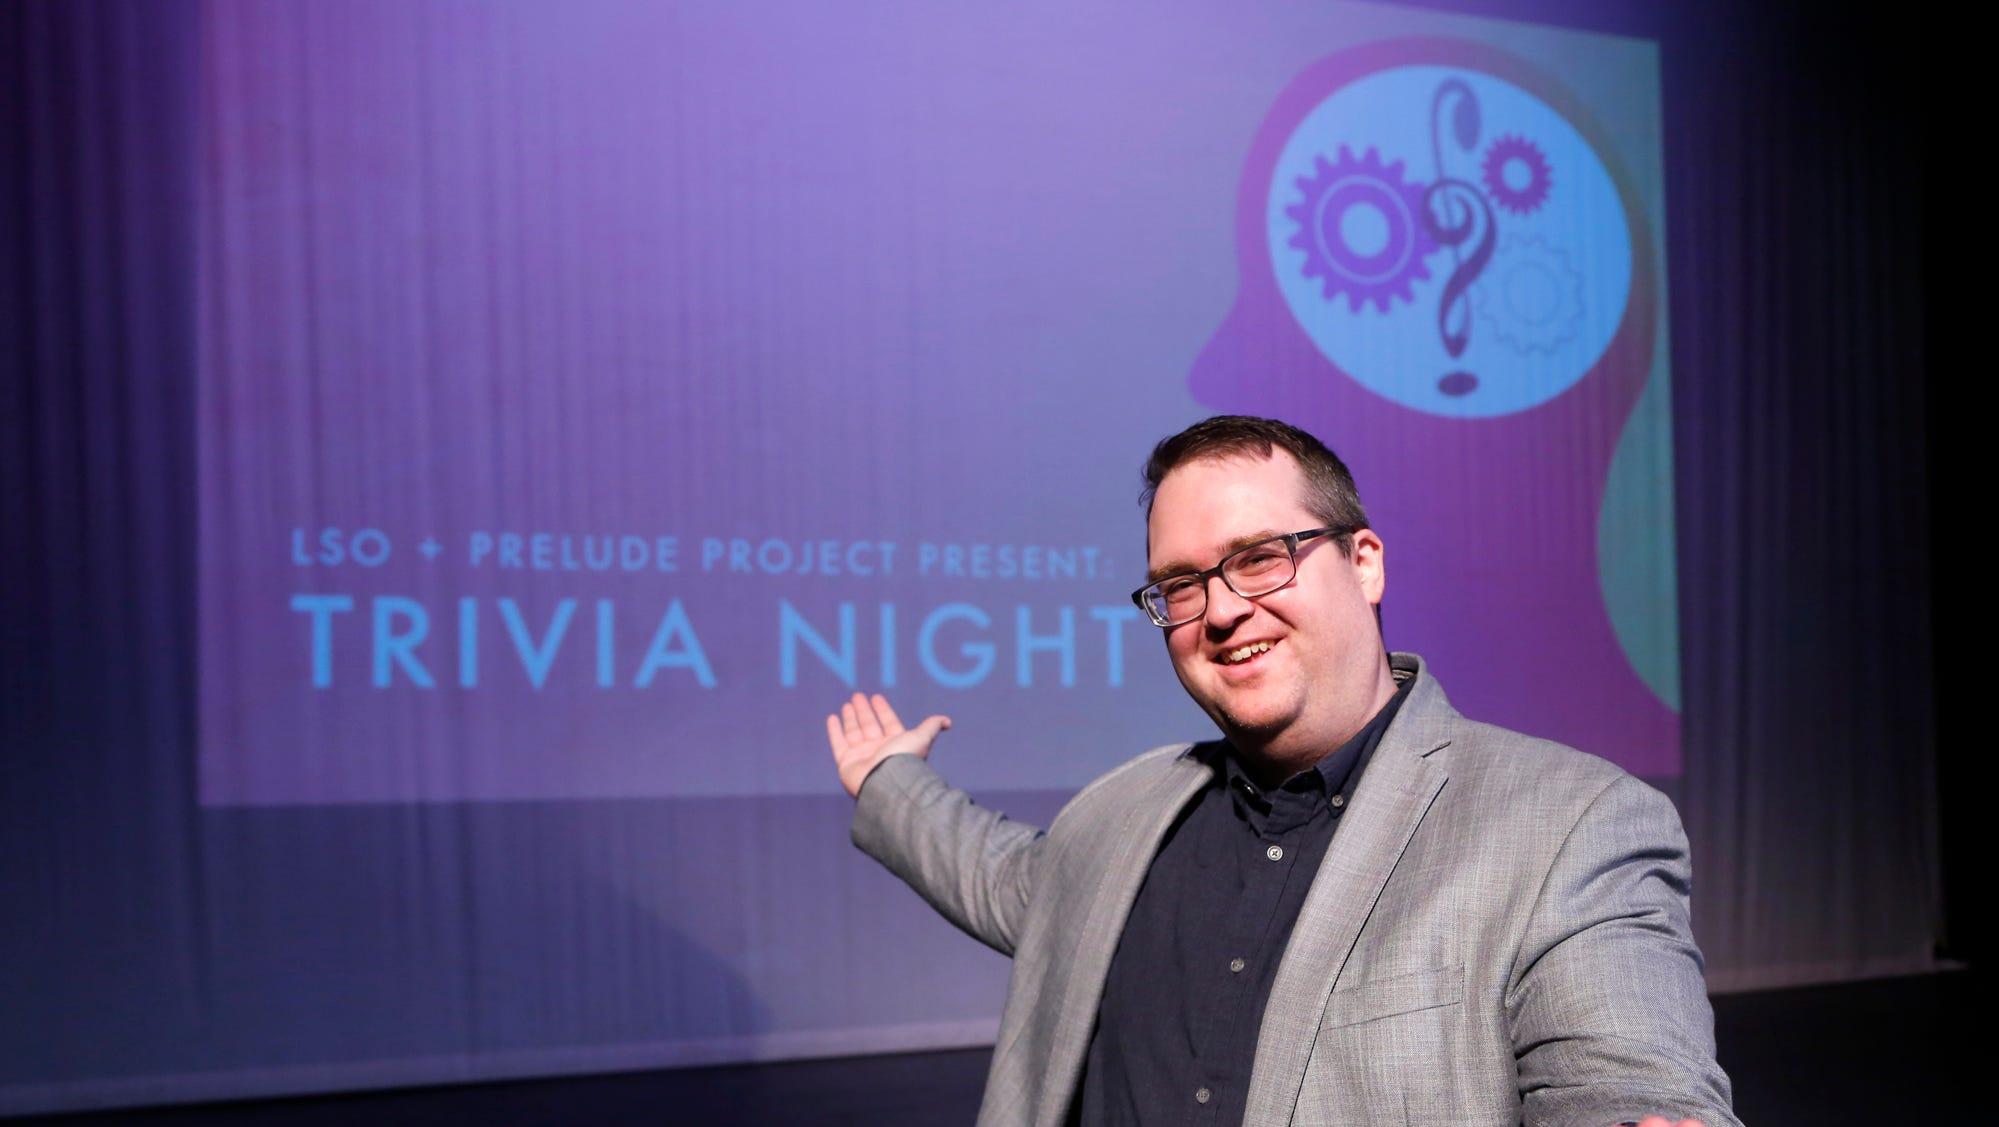 Nick Rogers, host of LSO Prelude Project Trivia Night, Wednesday, August 1, 2018, inside the Long Center for the Performing Arts. LSO Prelude Project Trivia Night will take place in the Long Center on Thursday, August 9 at 7:30 p.m.